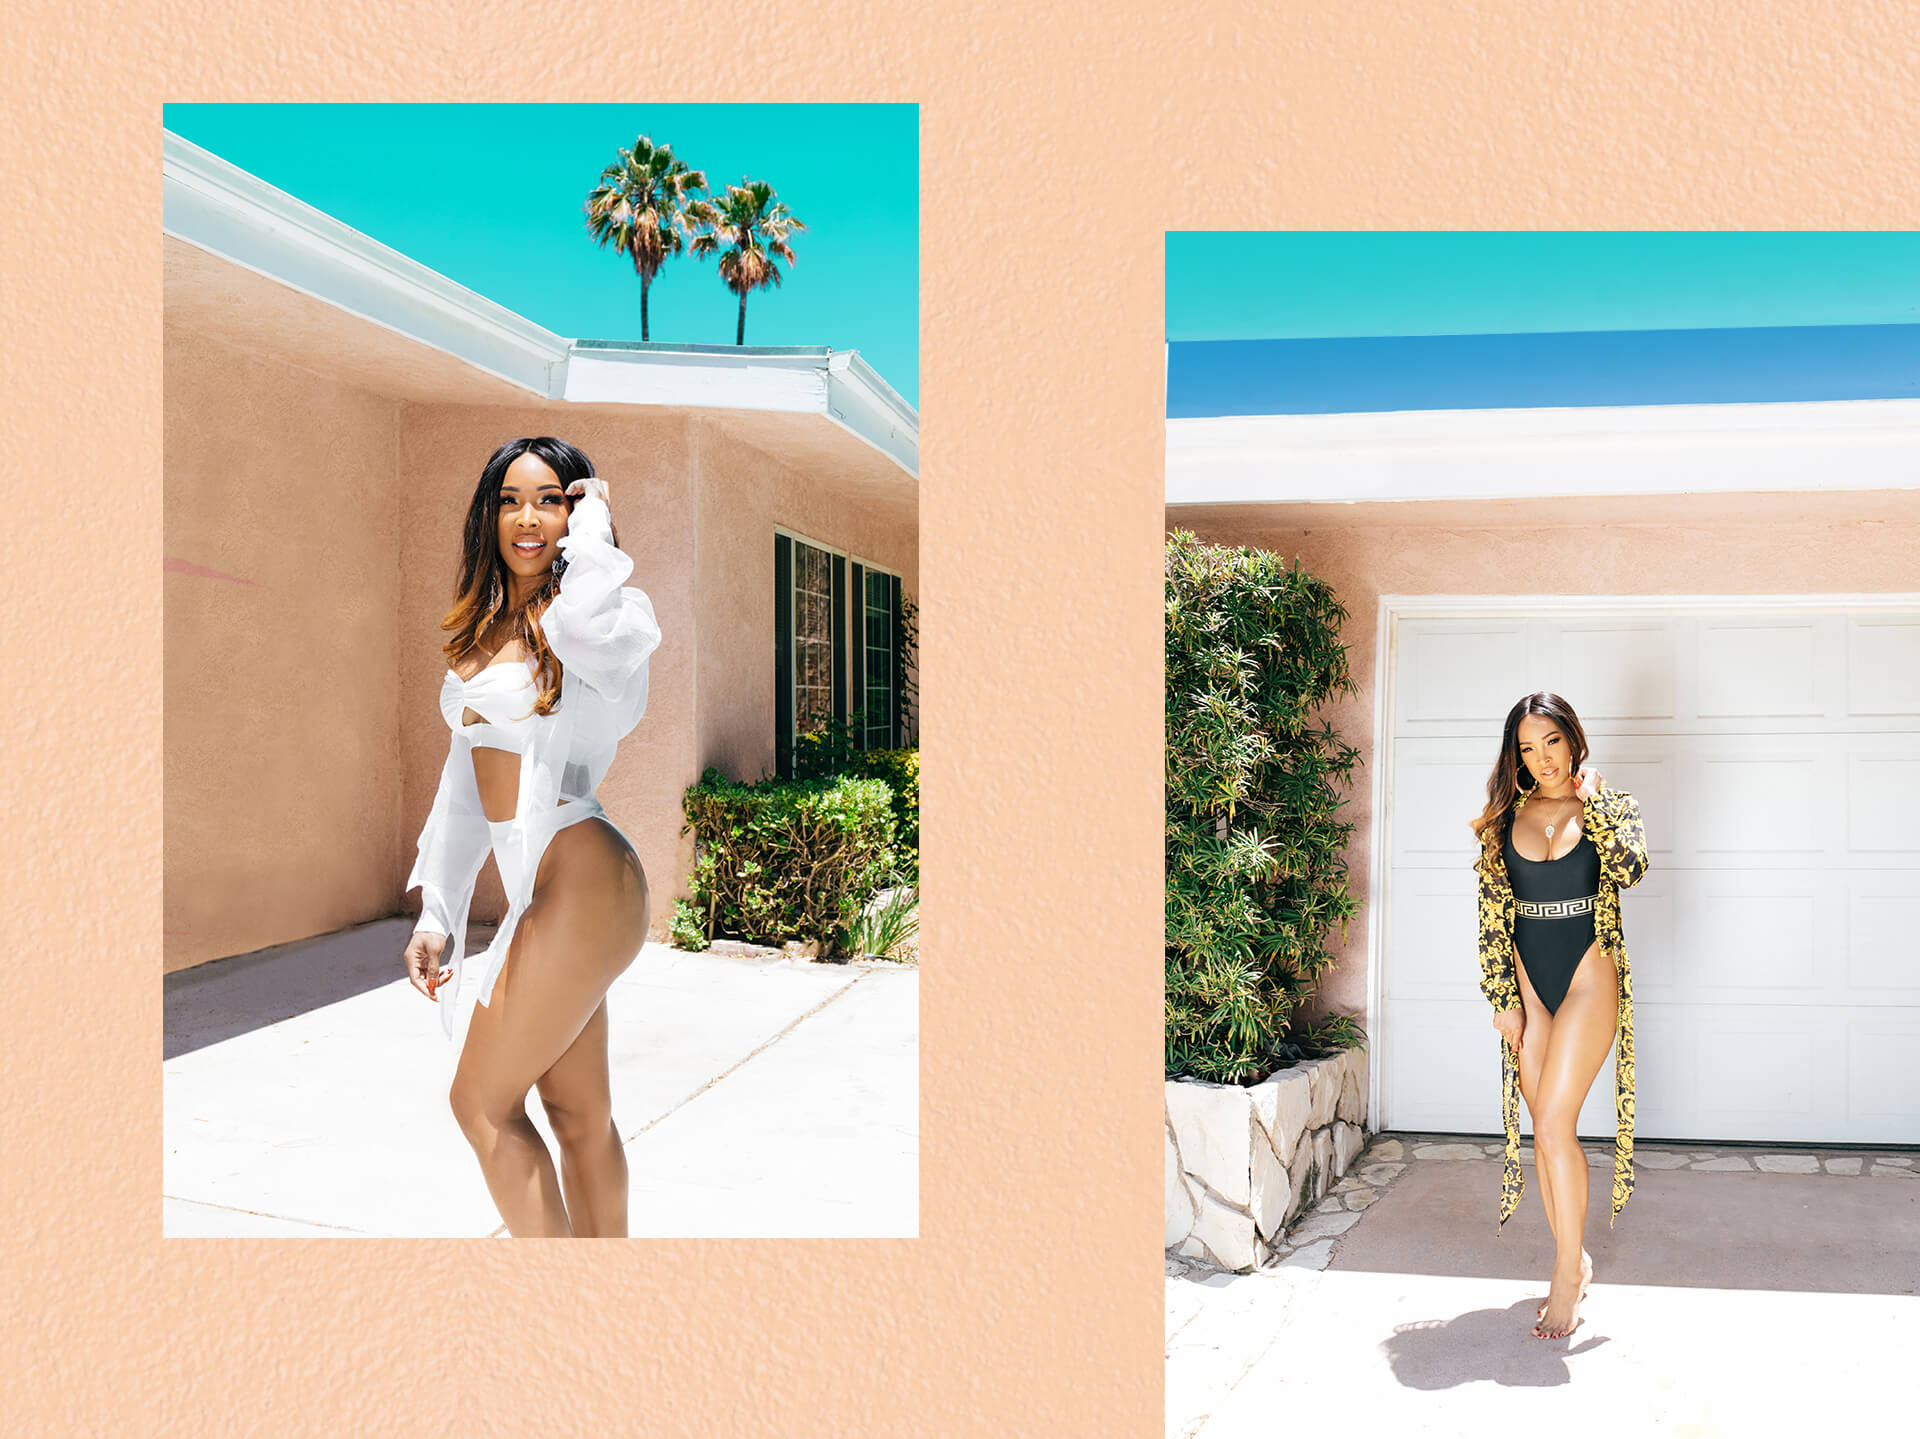 Malika haqq swimwear lookbook shoot 3 desktop